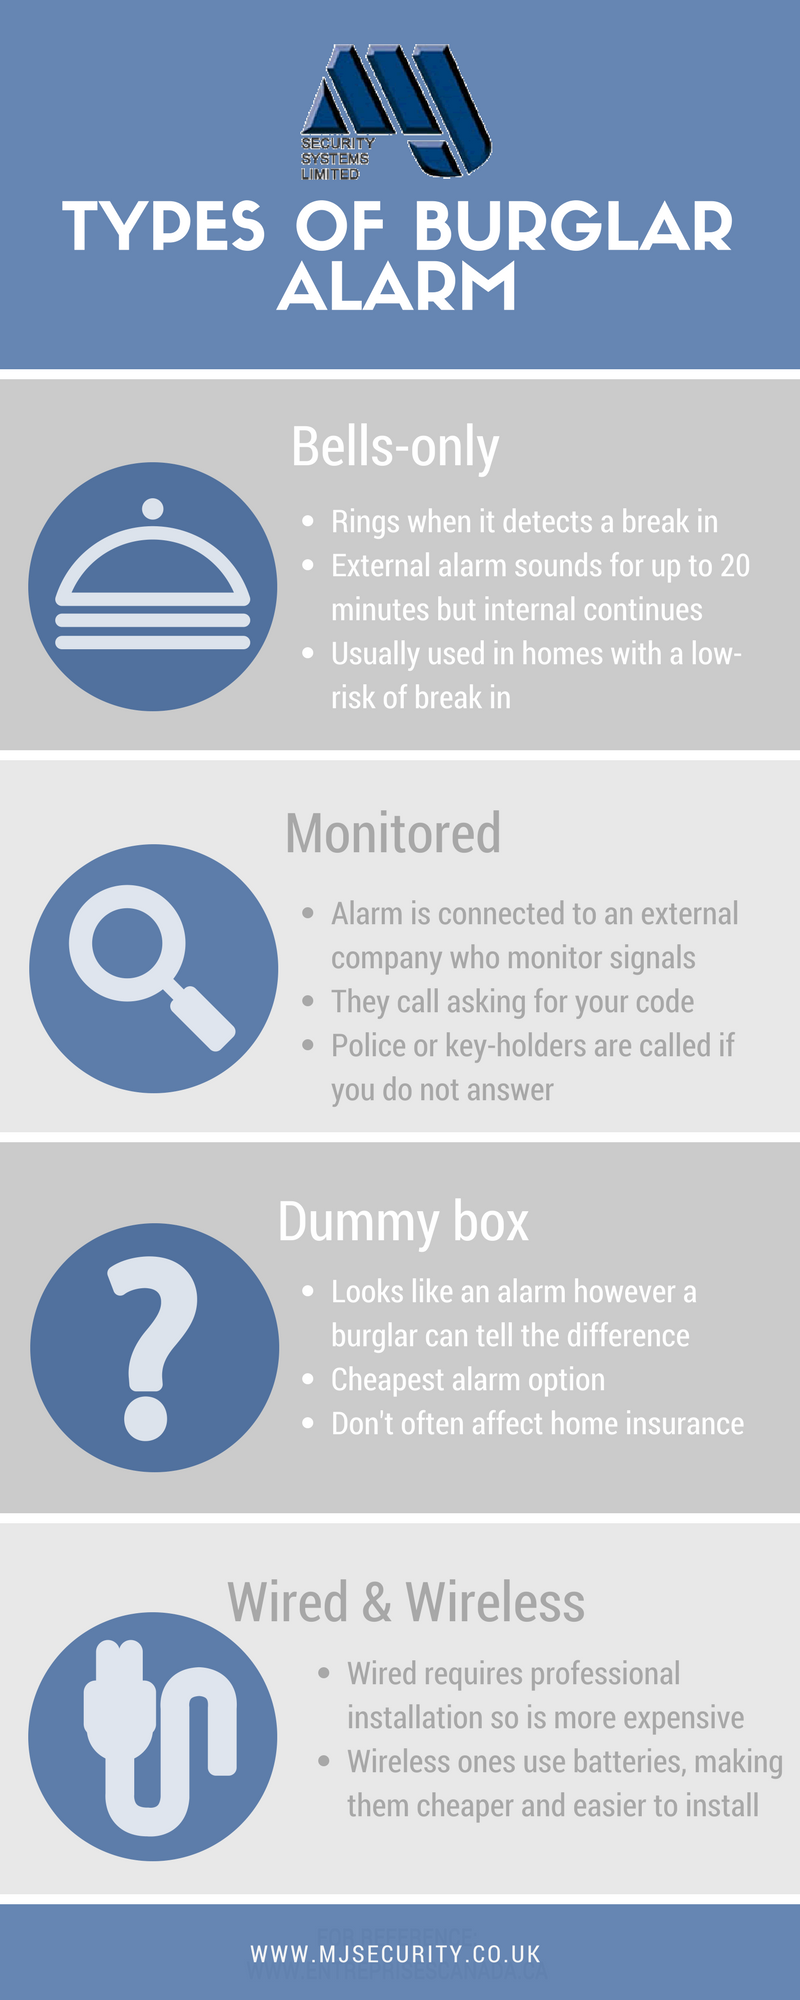 burglar-alarms-types-infographic-galleryr